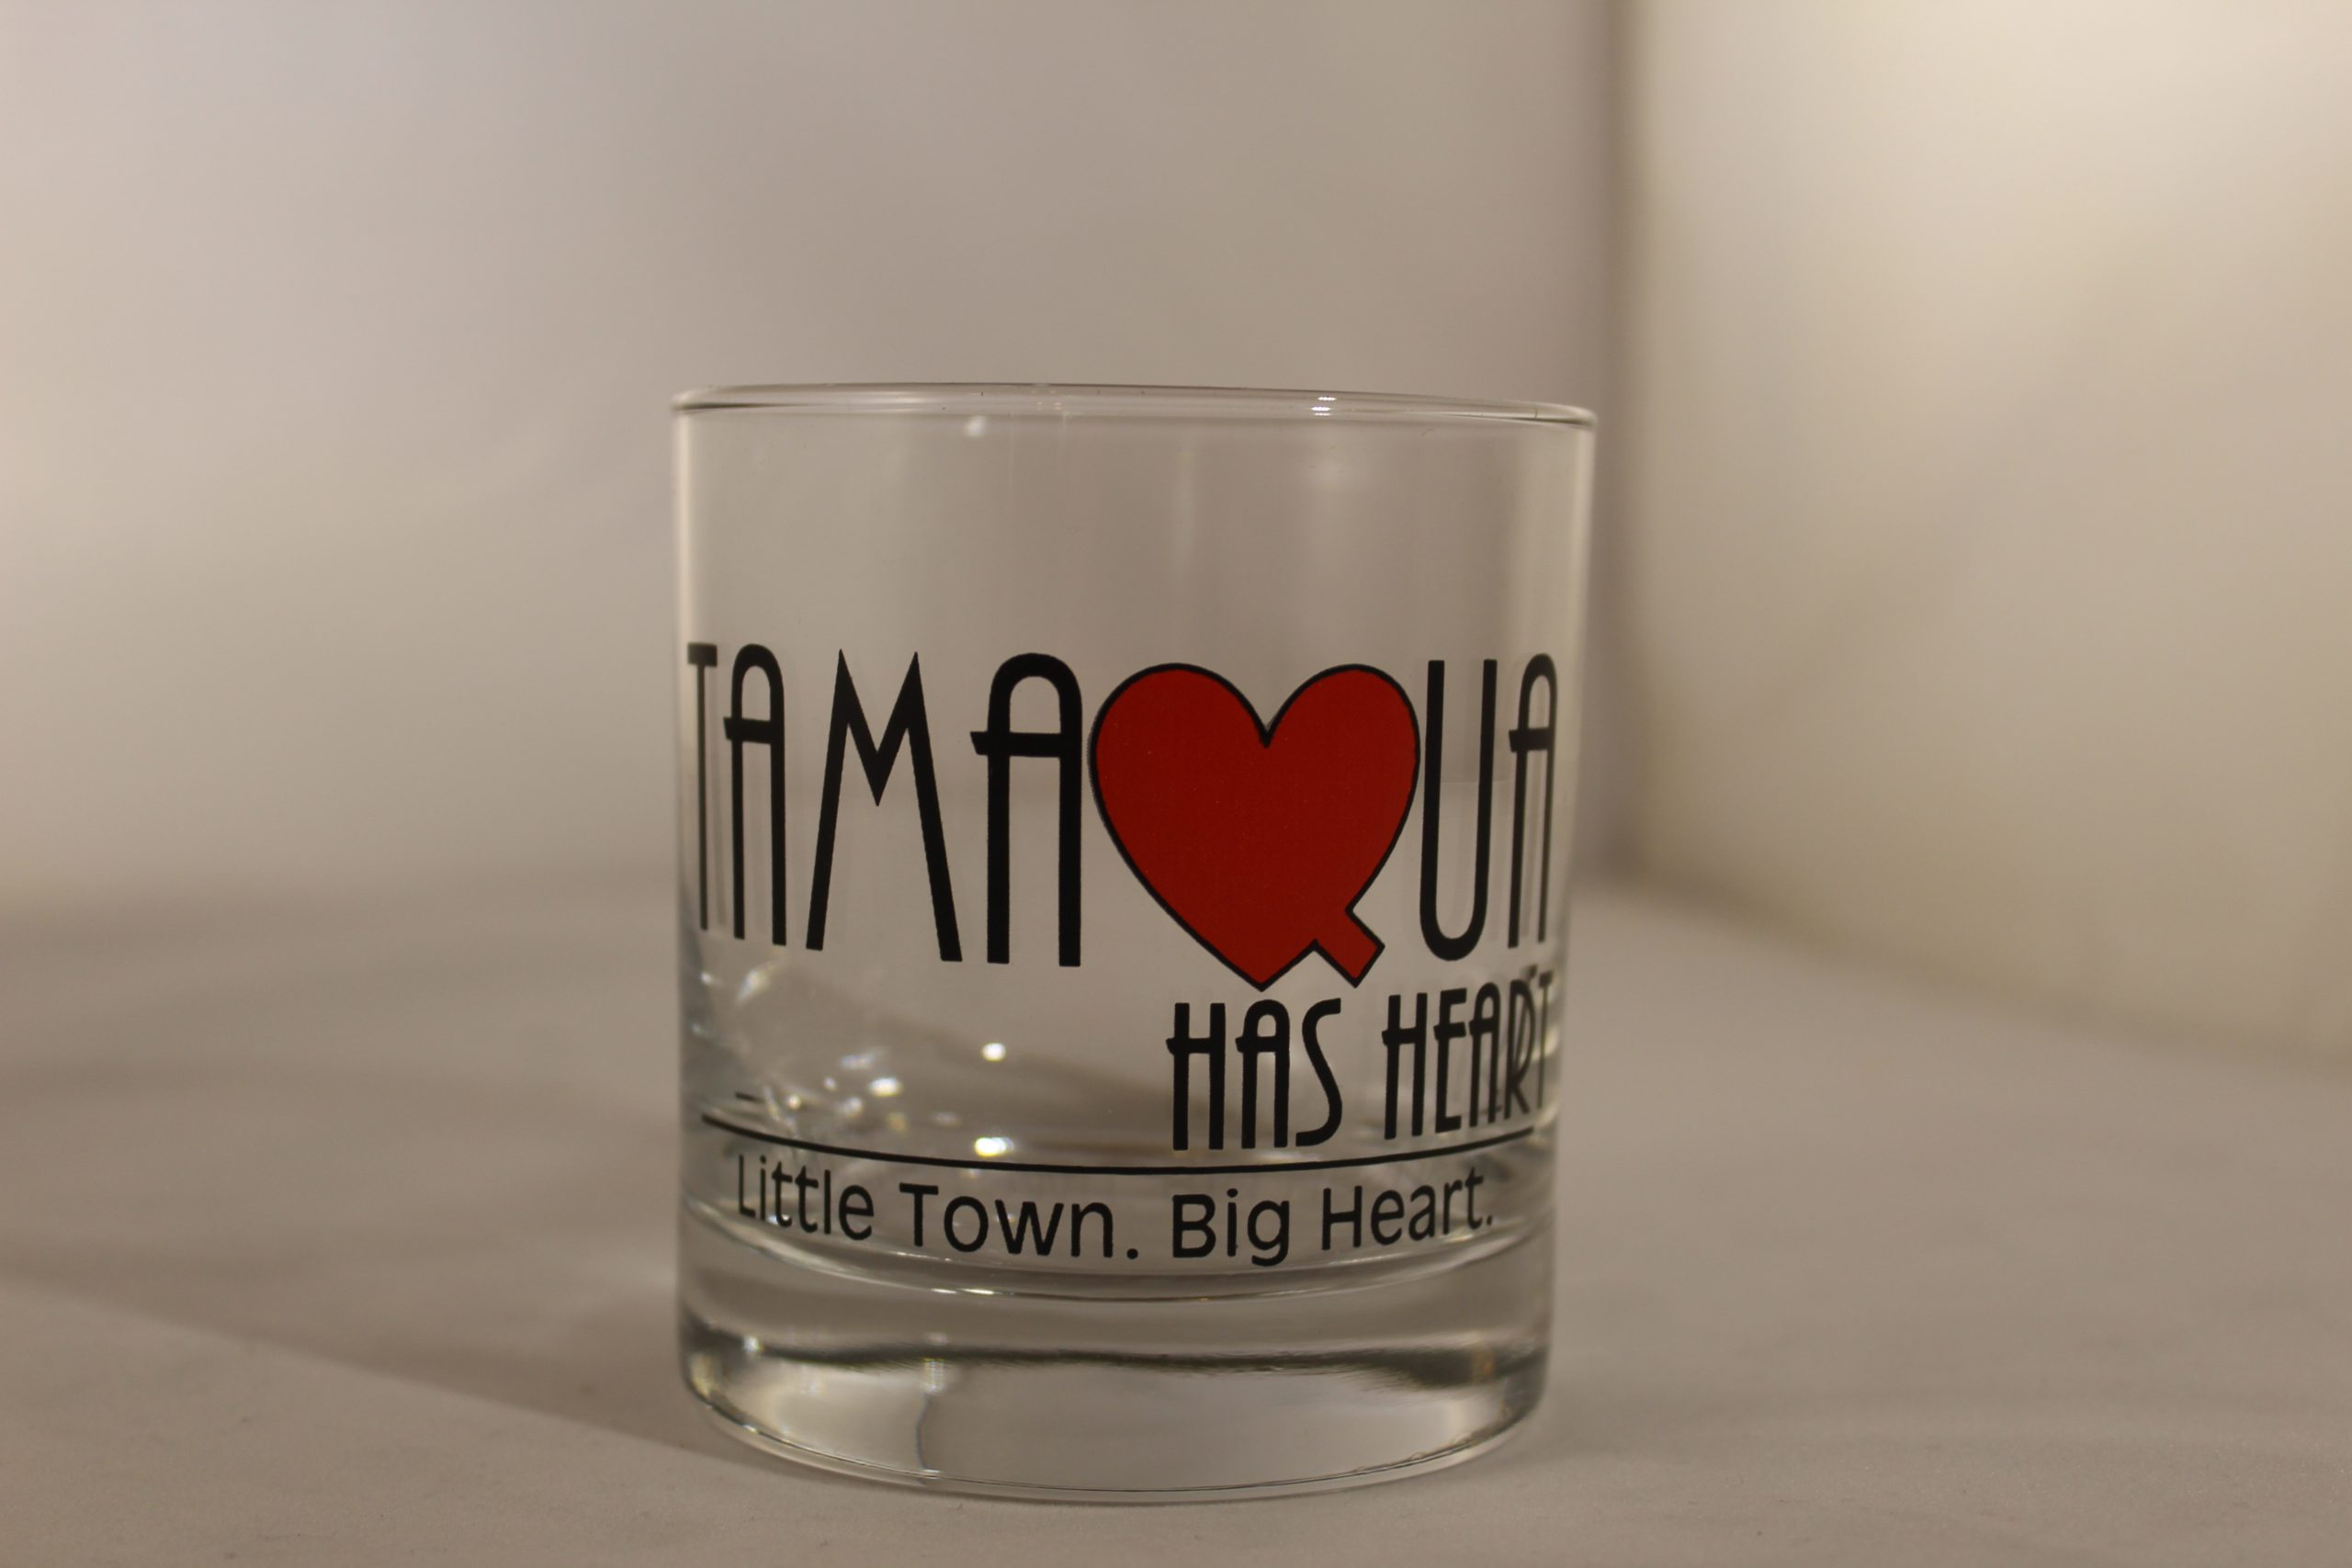 Tamaqua Has Heart Rocks Glass